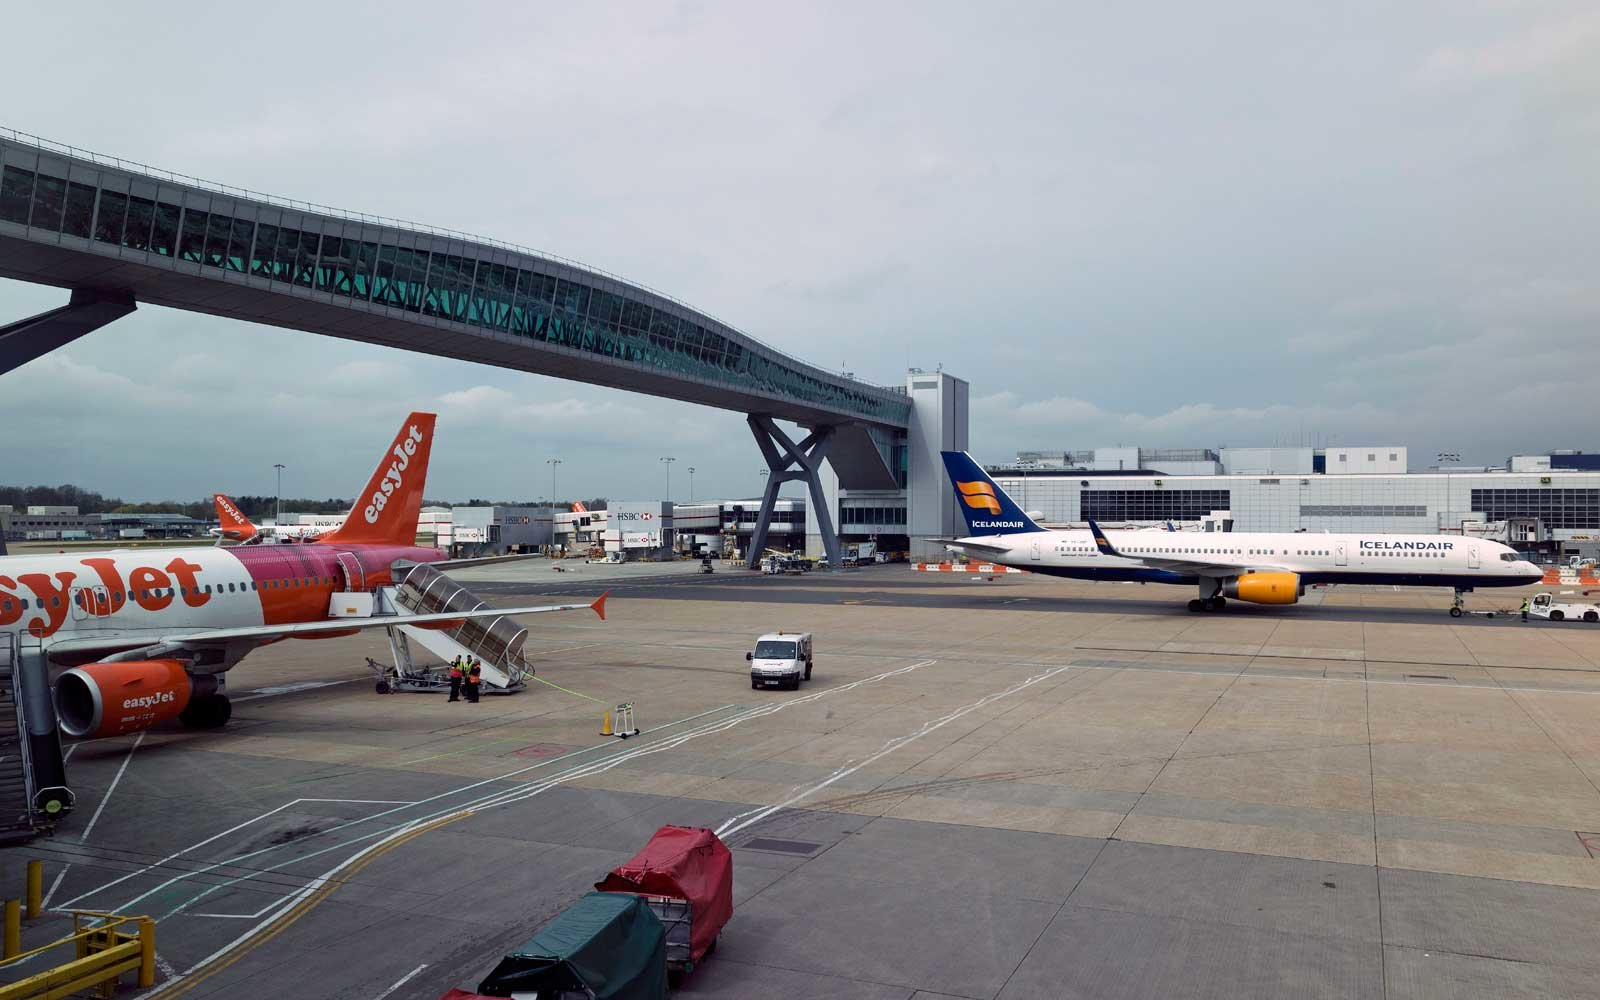 gatwick airport - photo #45